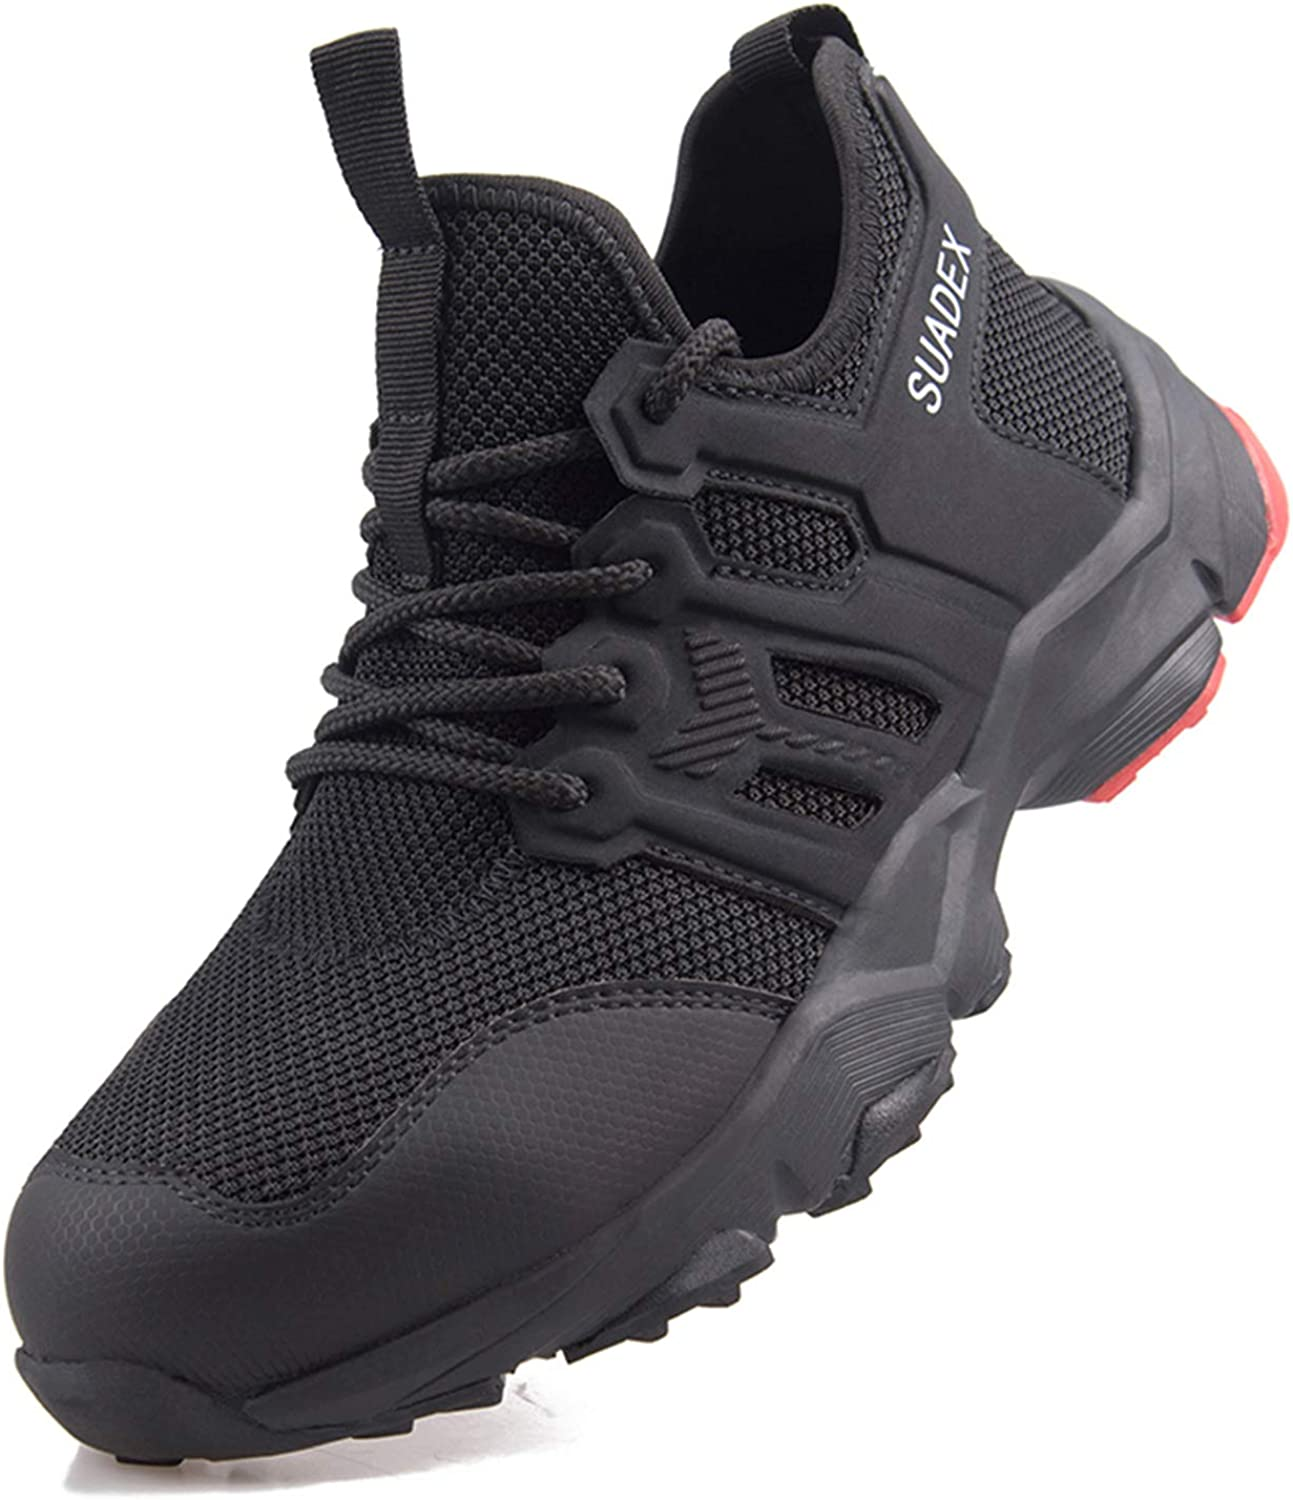 SUADEX Safety Shoes for Men Composite